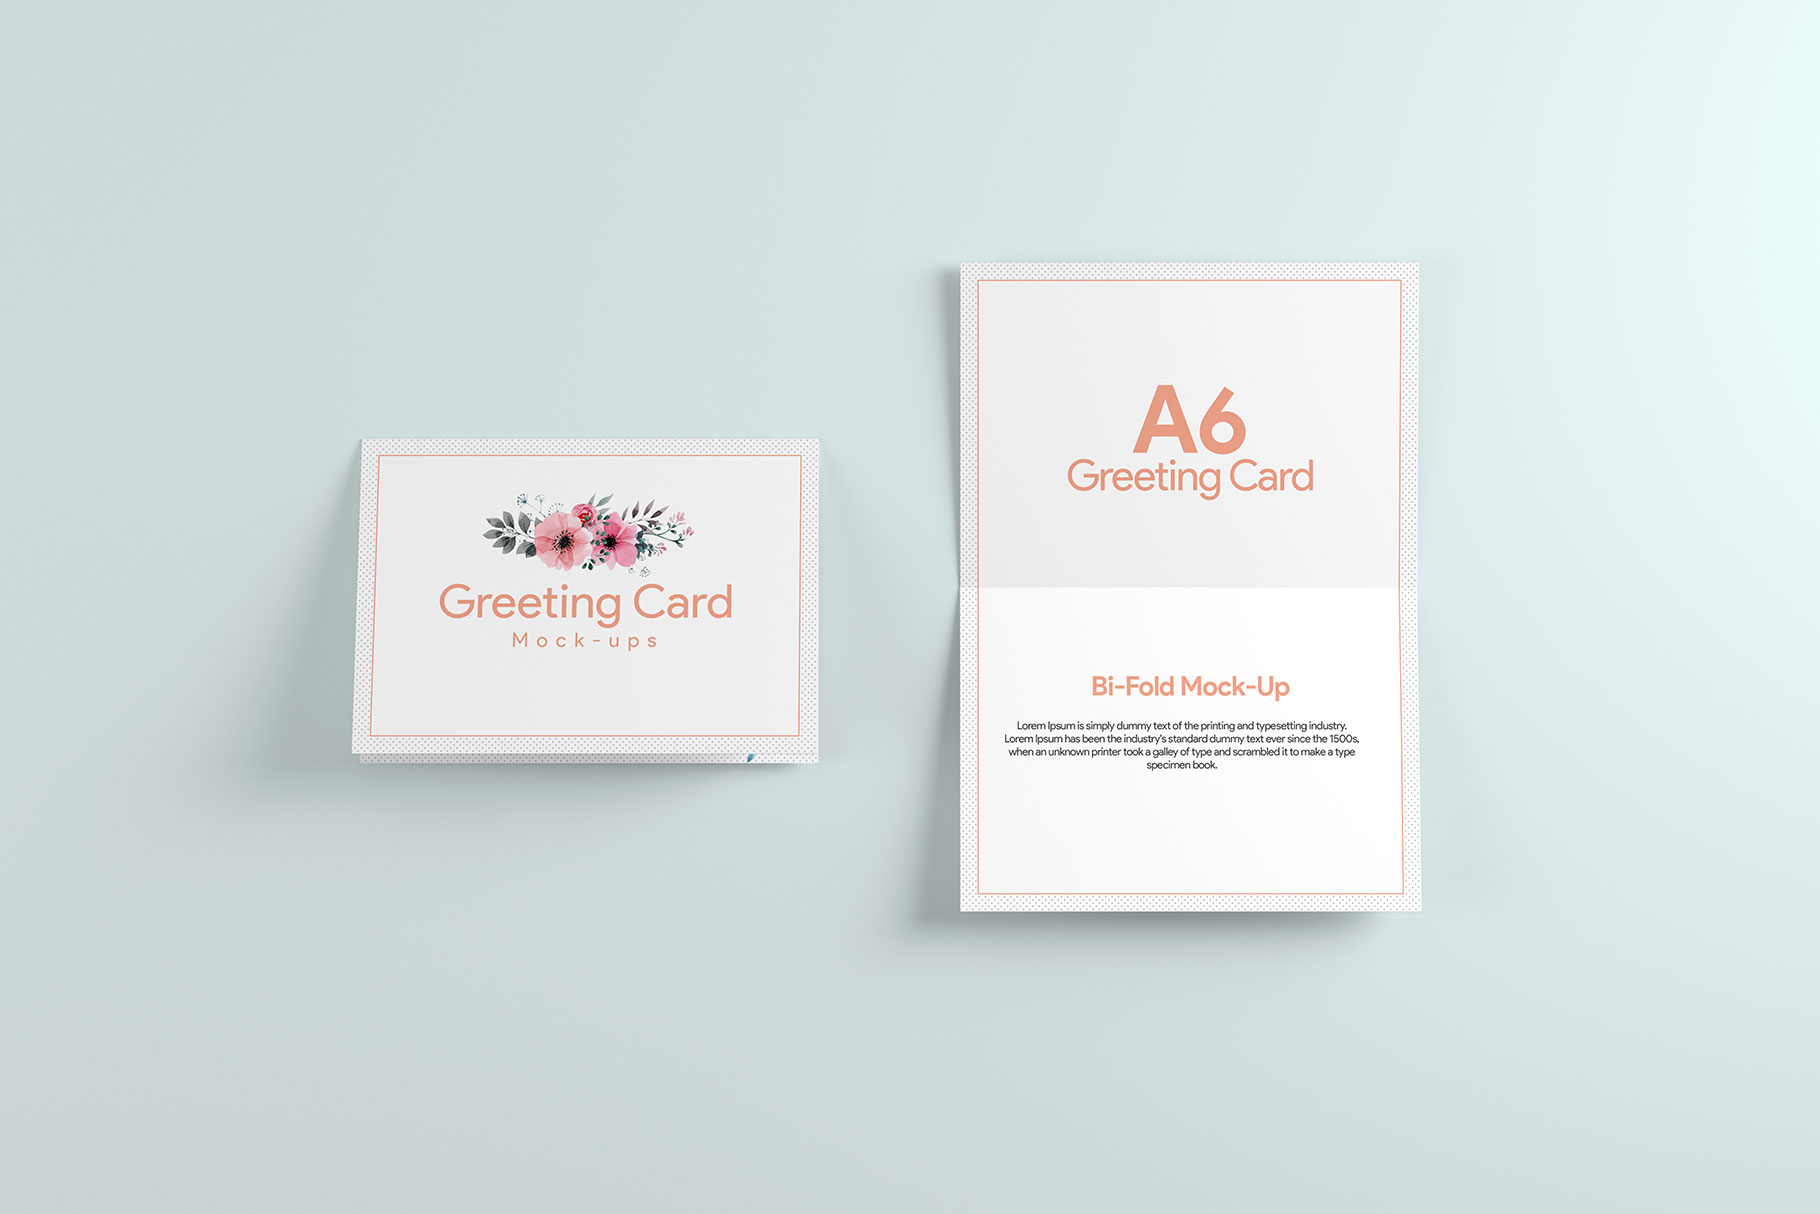 A6 Greeting Card Invitation X2 example image 3